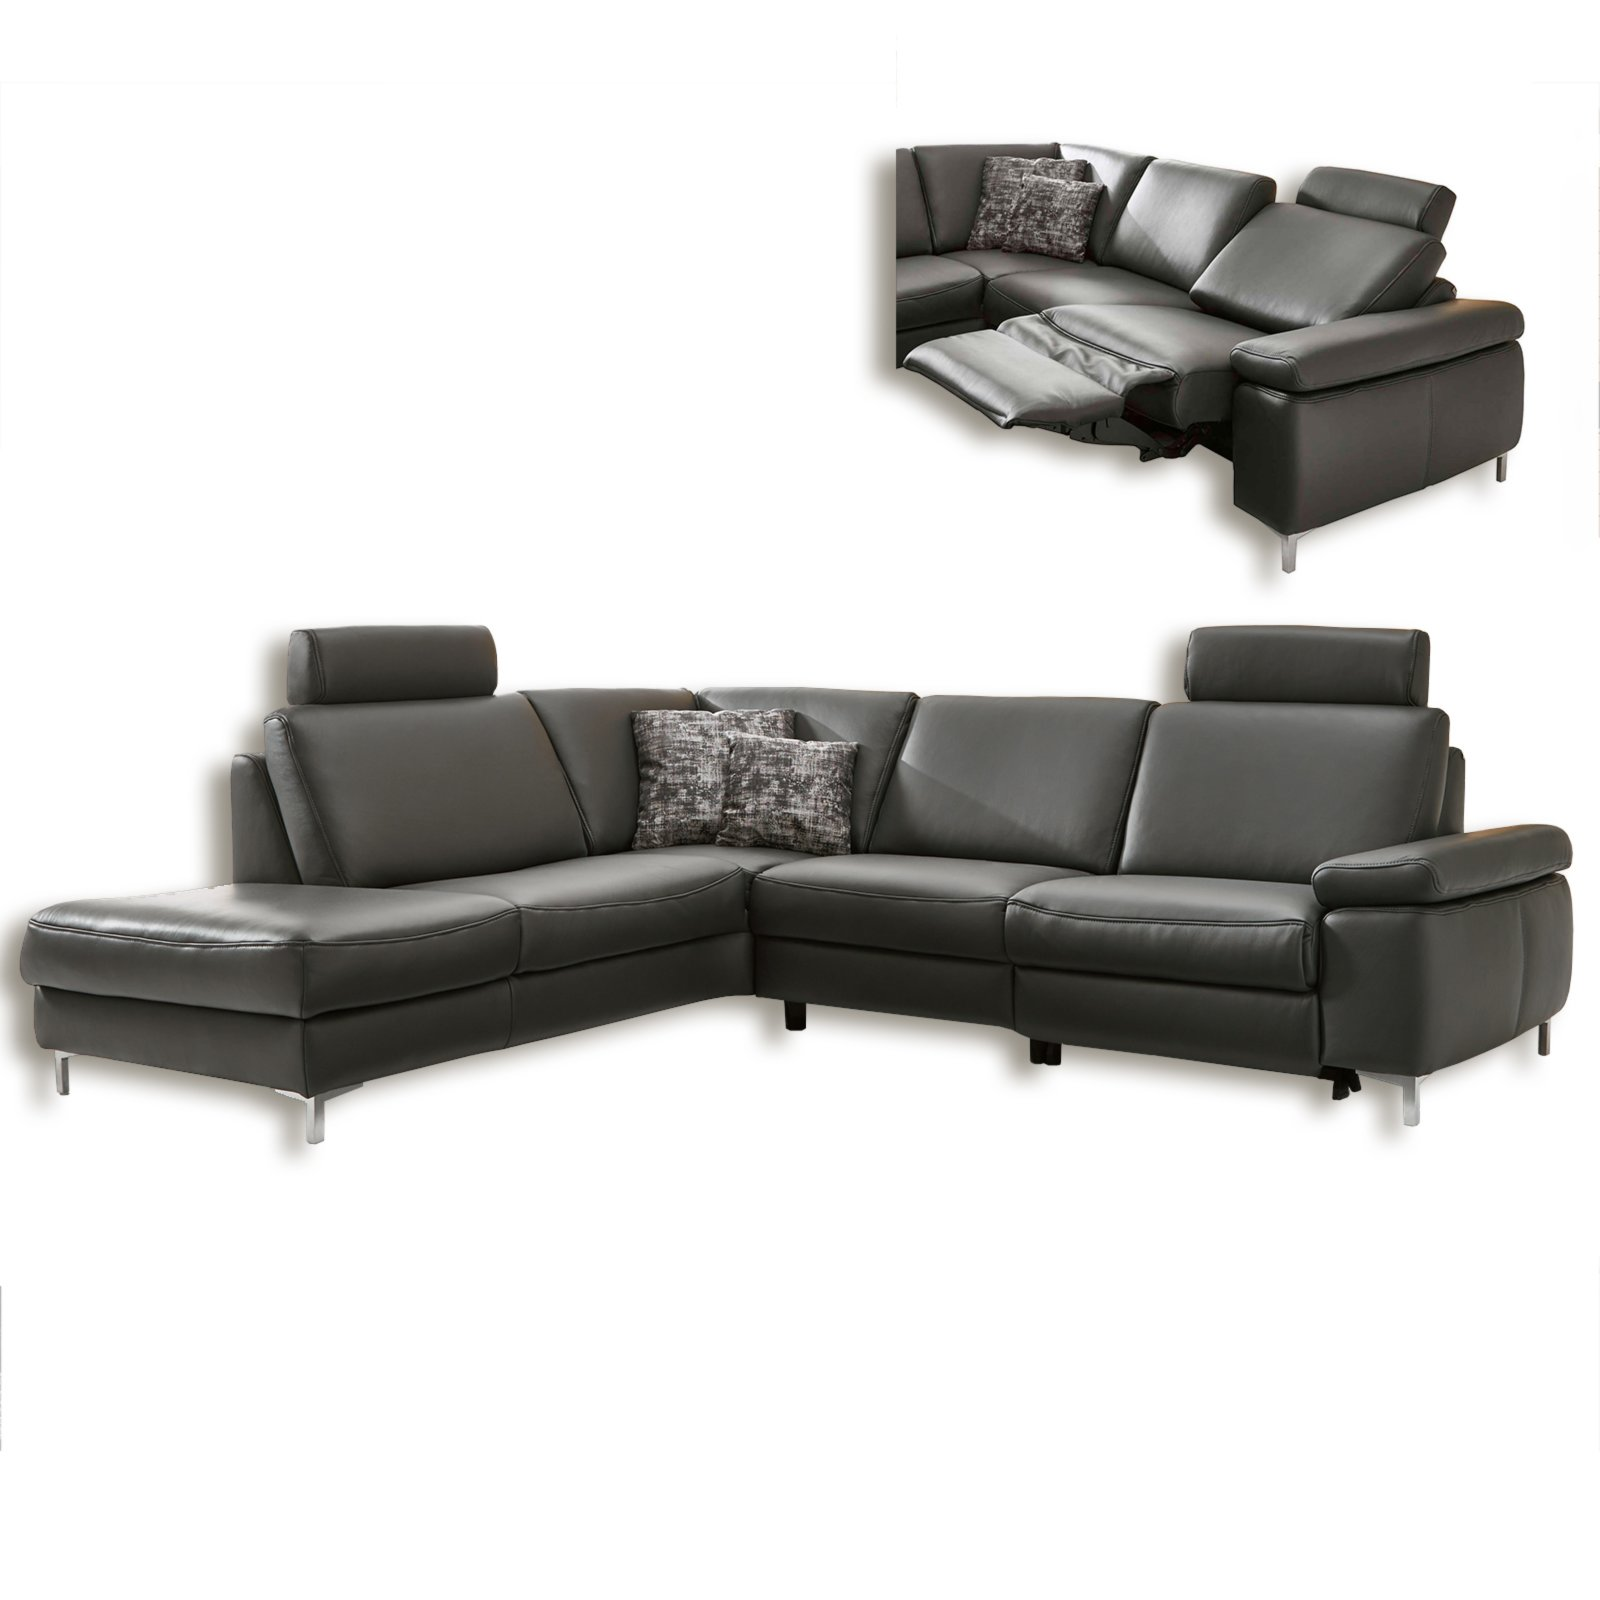 Ledercouch anthrazit  Ledersofa - anthrazit - Wall Away Funtkion - Ottomane links ...